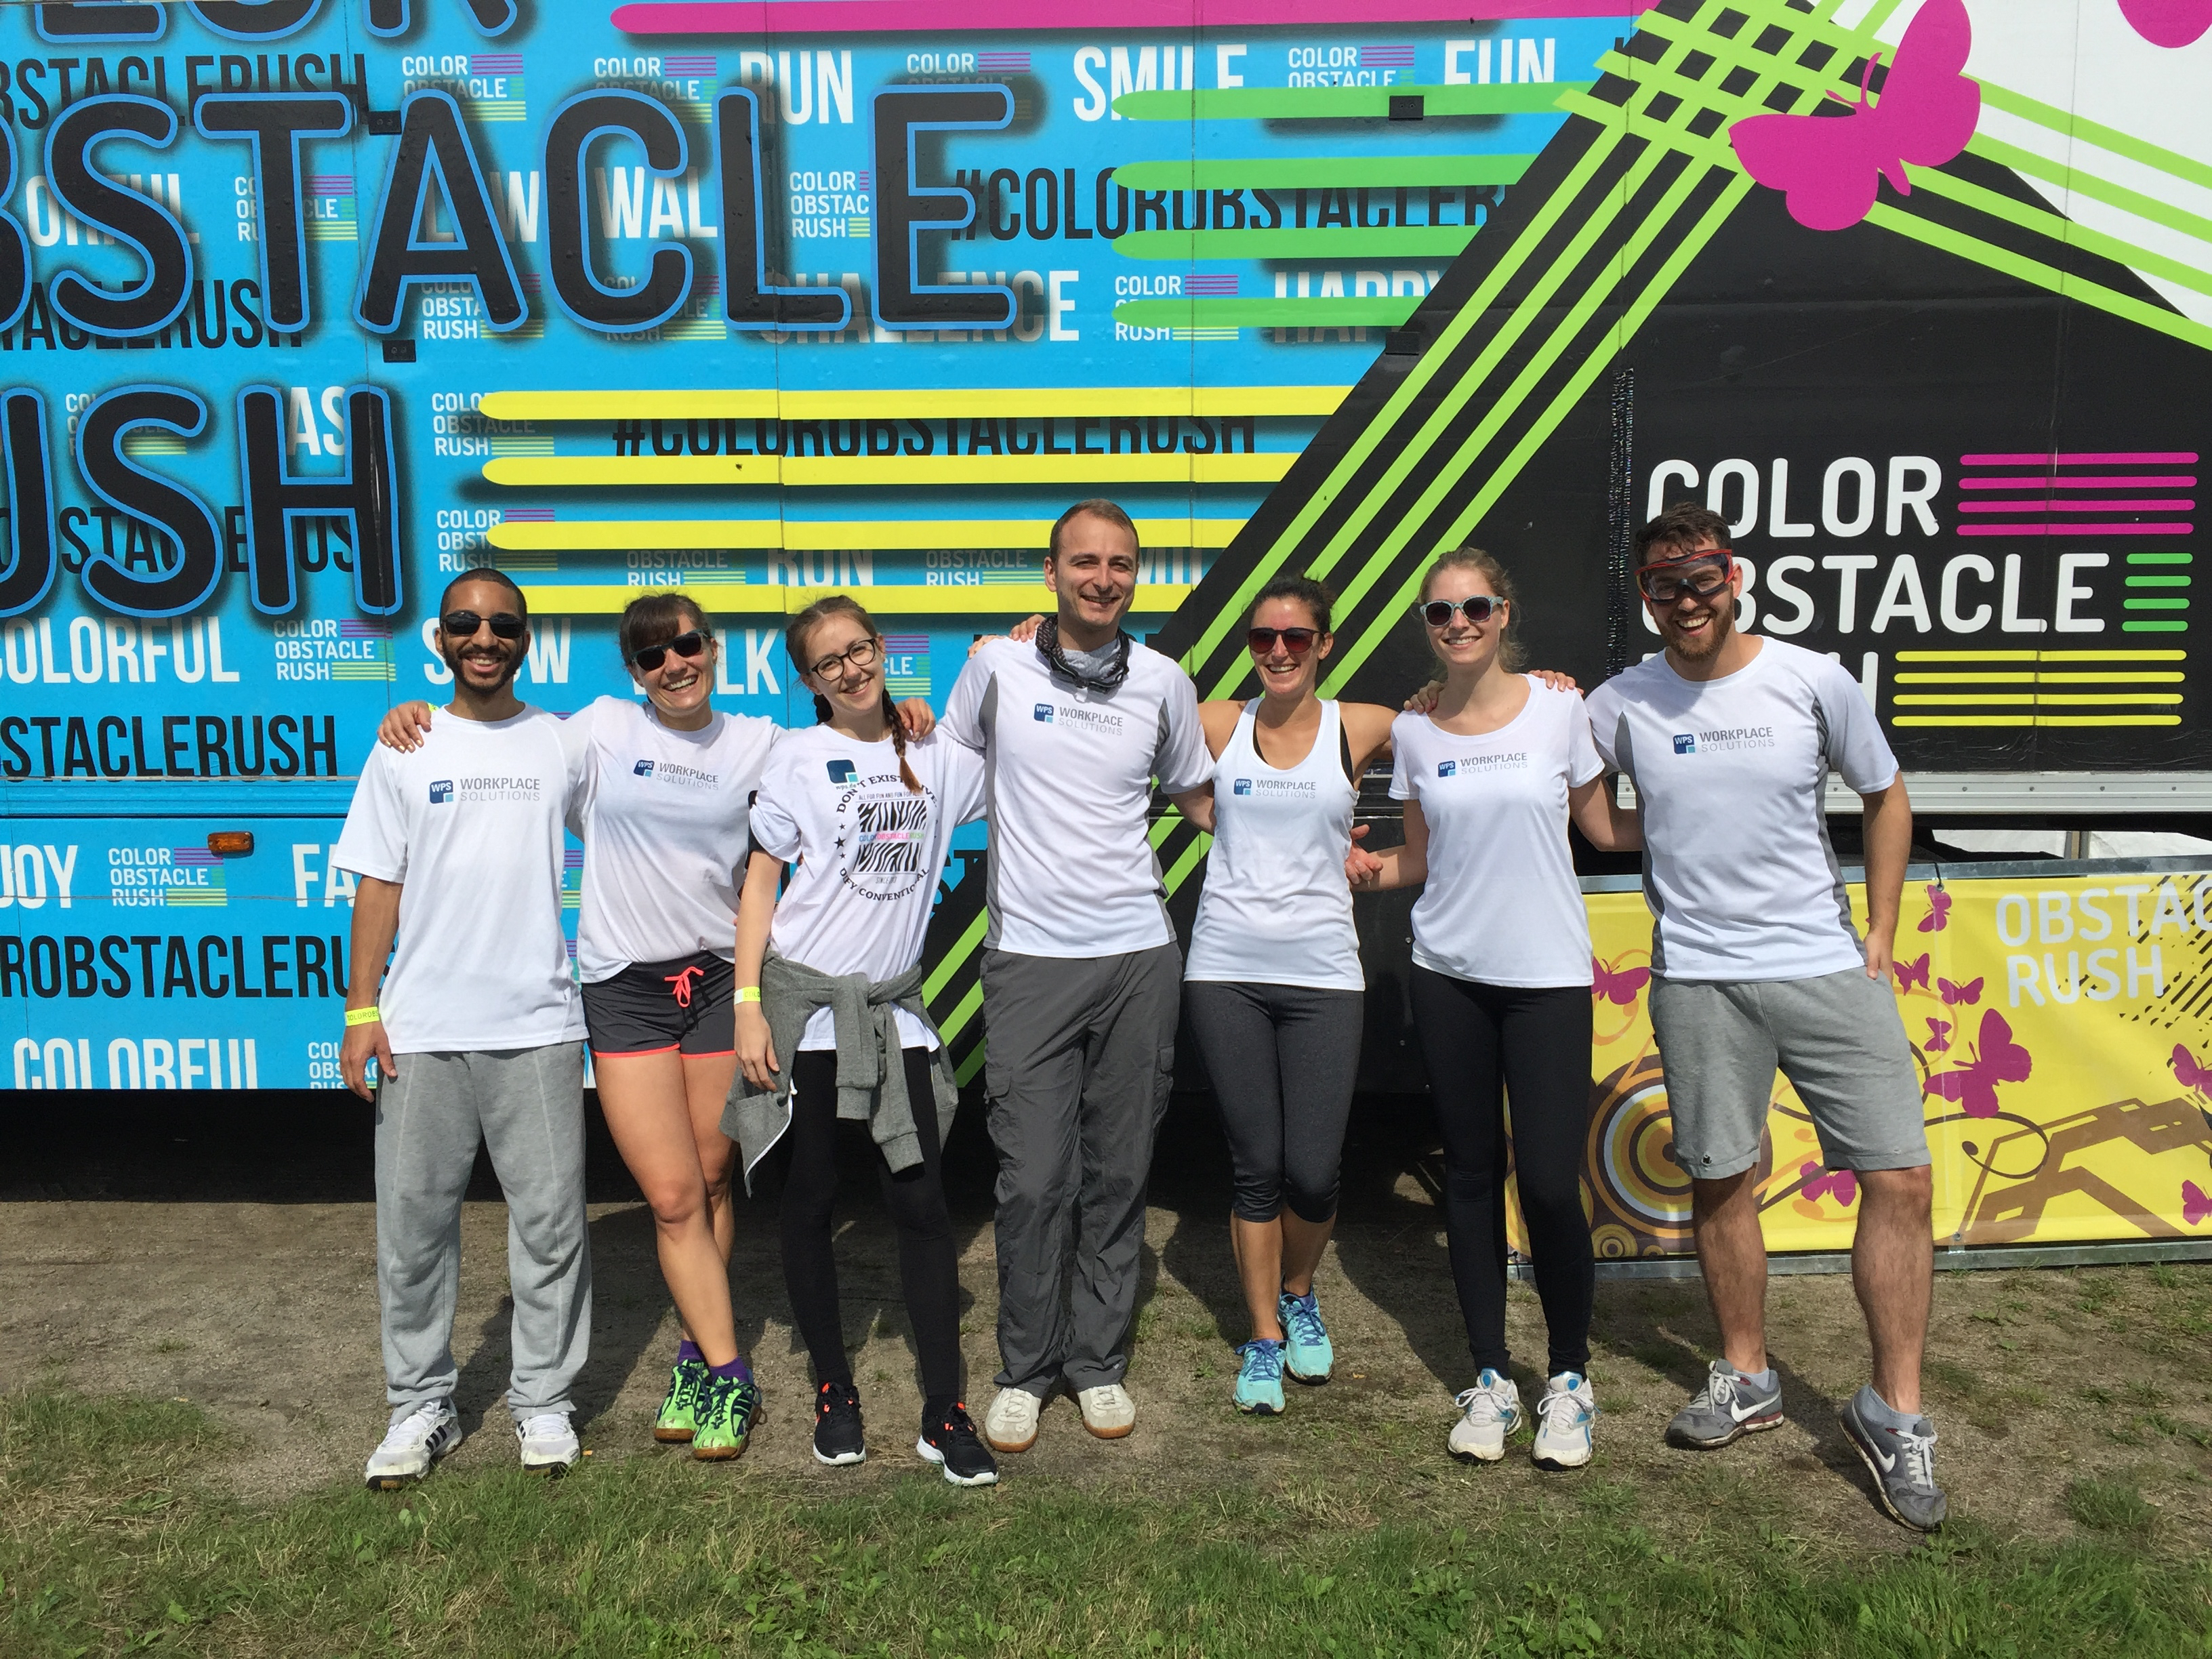 Color Obstacle Rush 2016 Team